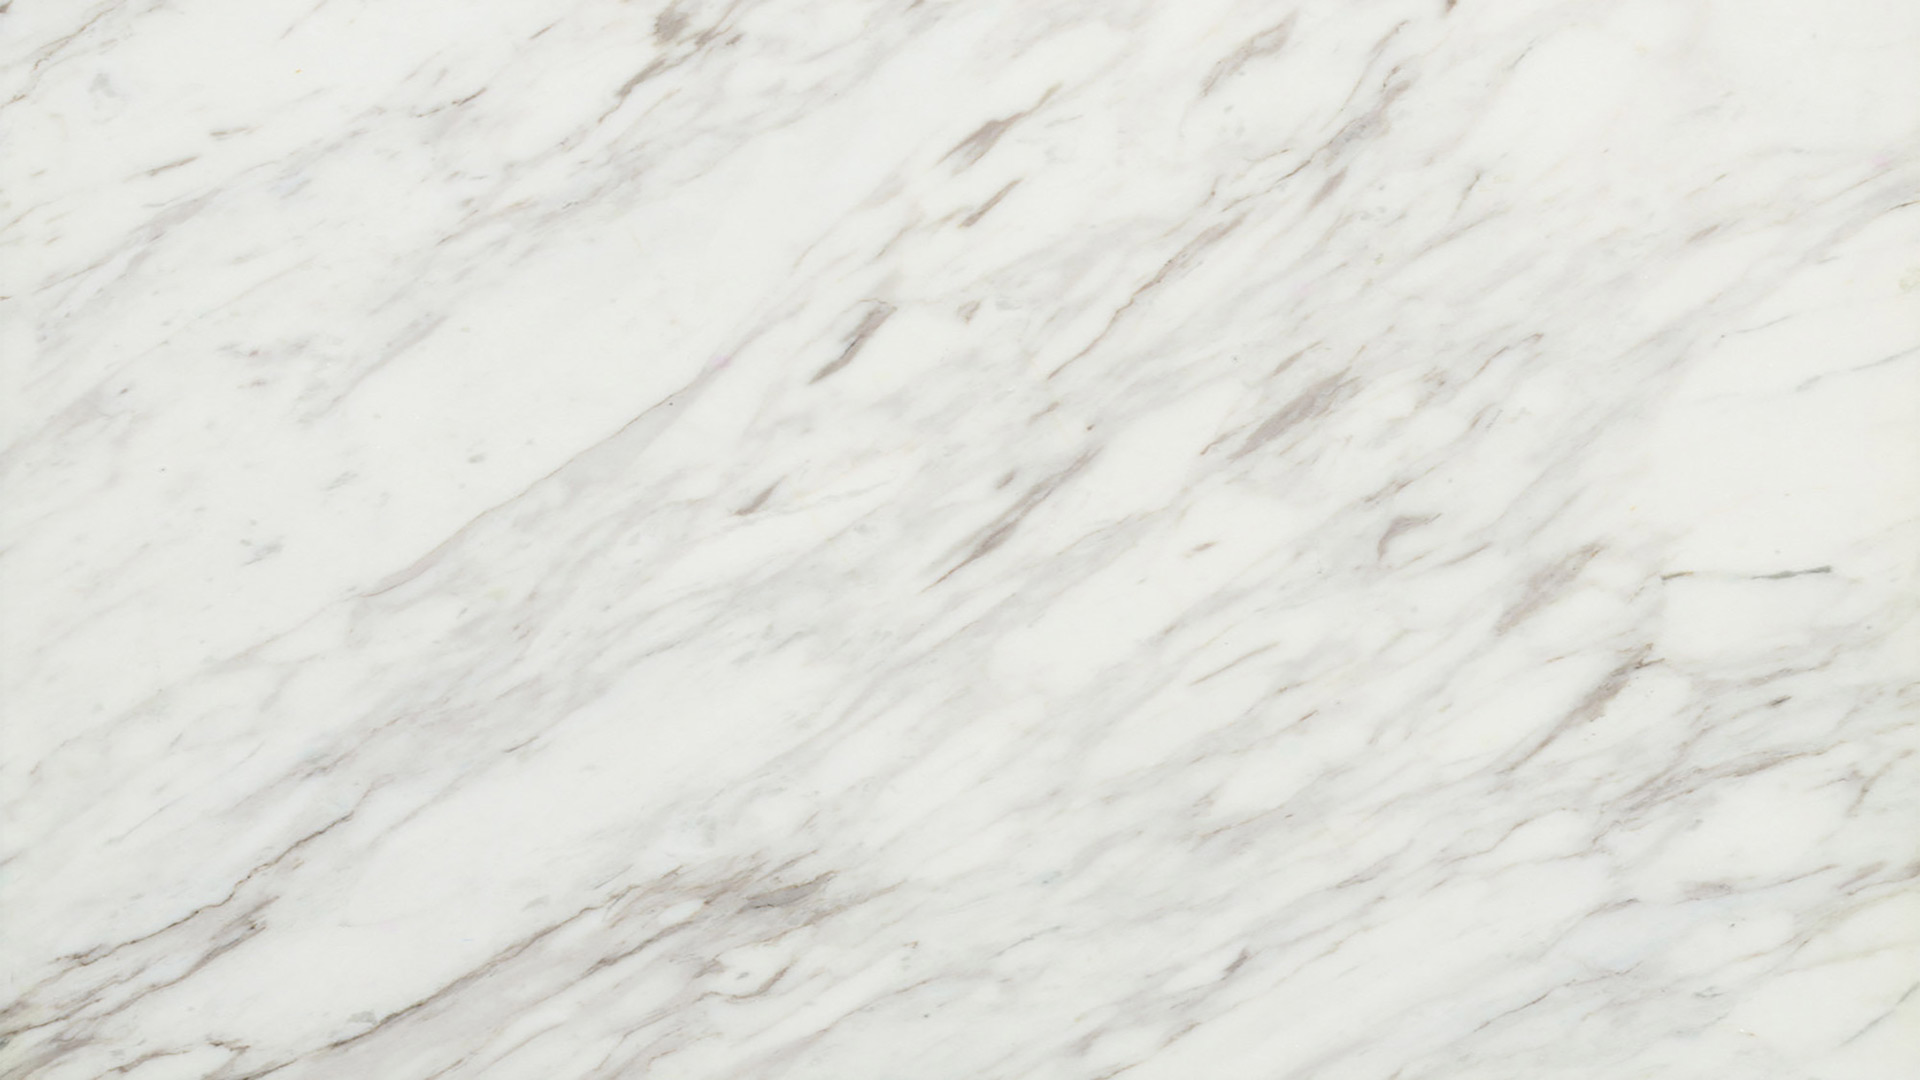 Volakas greek white marble